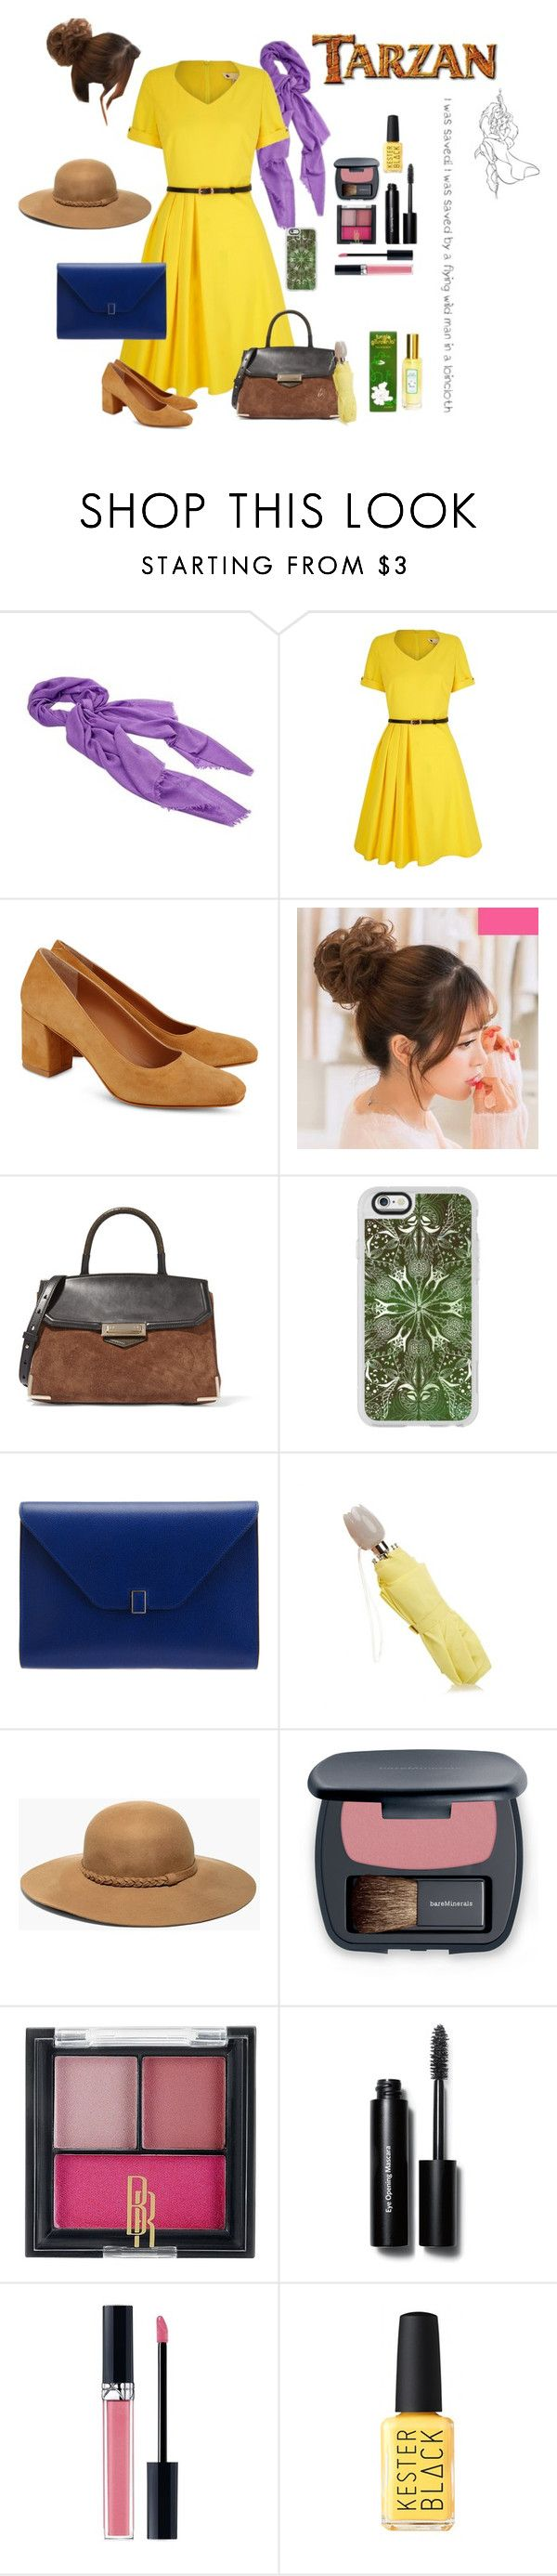 """""""Inspired by Jane"""" by capfan2014 ❤ liked on Polyvore featuring Faliero Sarti, Yumi, Maryam Nassir Zadeh, Alexander Wang, Casetify, Valextra, Furla, Chico's, Bare Escentuals and Black Radiance"""